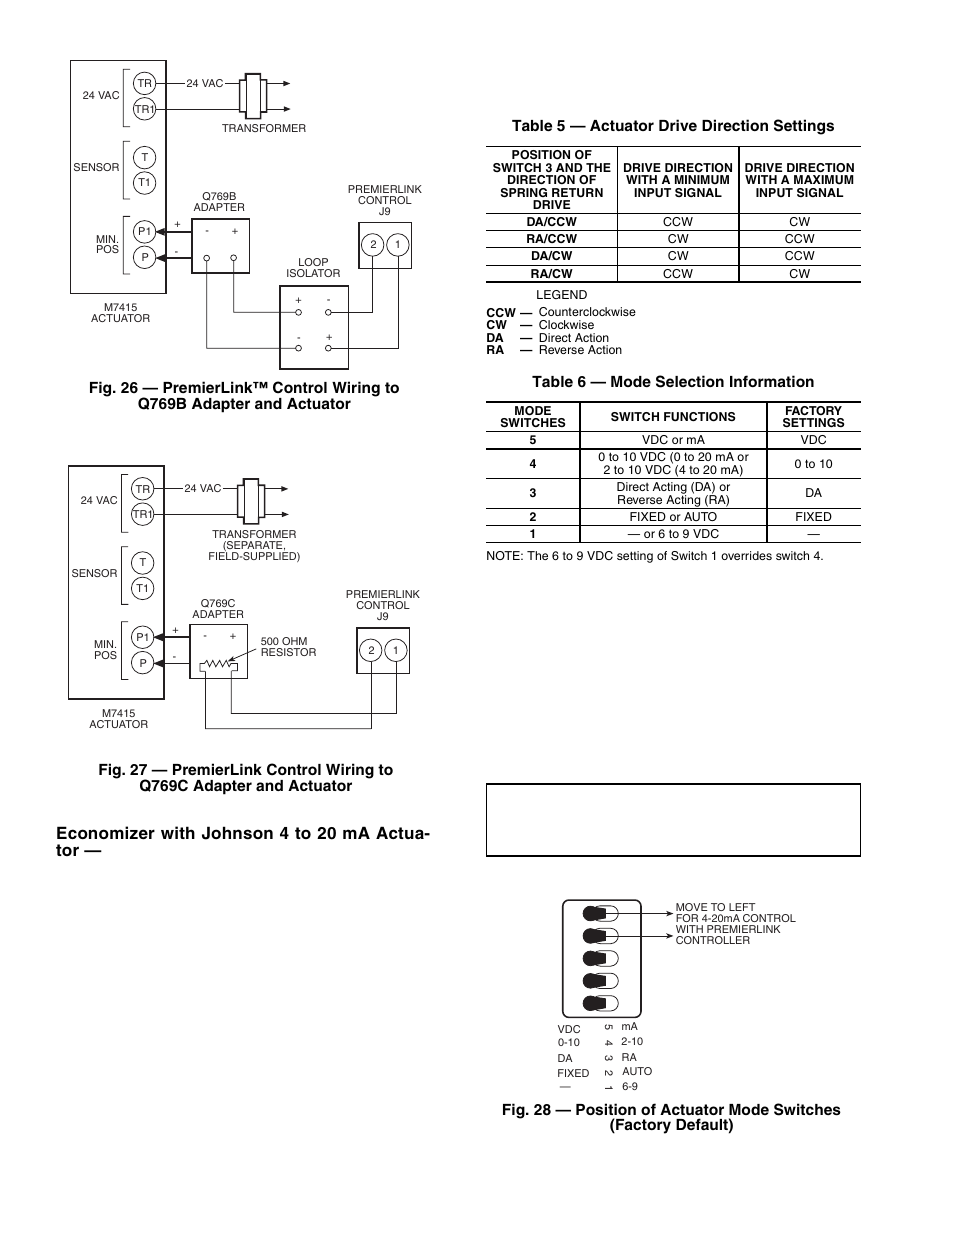 Economizer with johnson 4 to 20 ma actua- tor | Carrier PREMIERLINK  33CSPREMLK User Manual